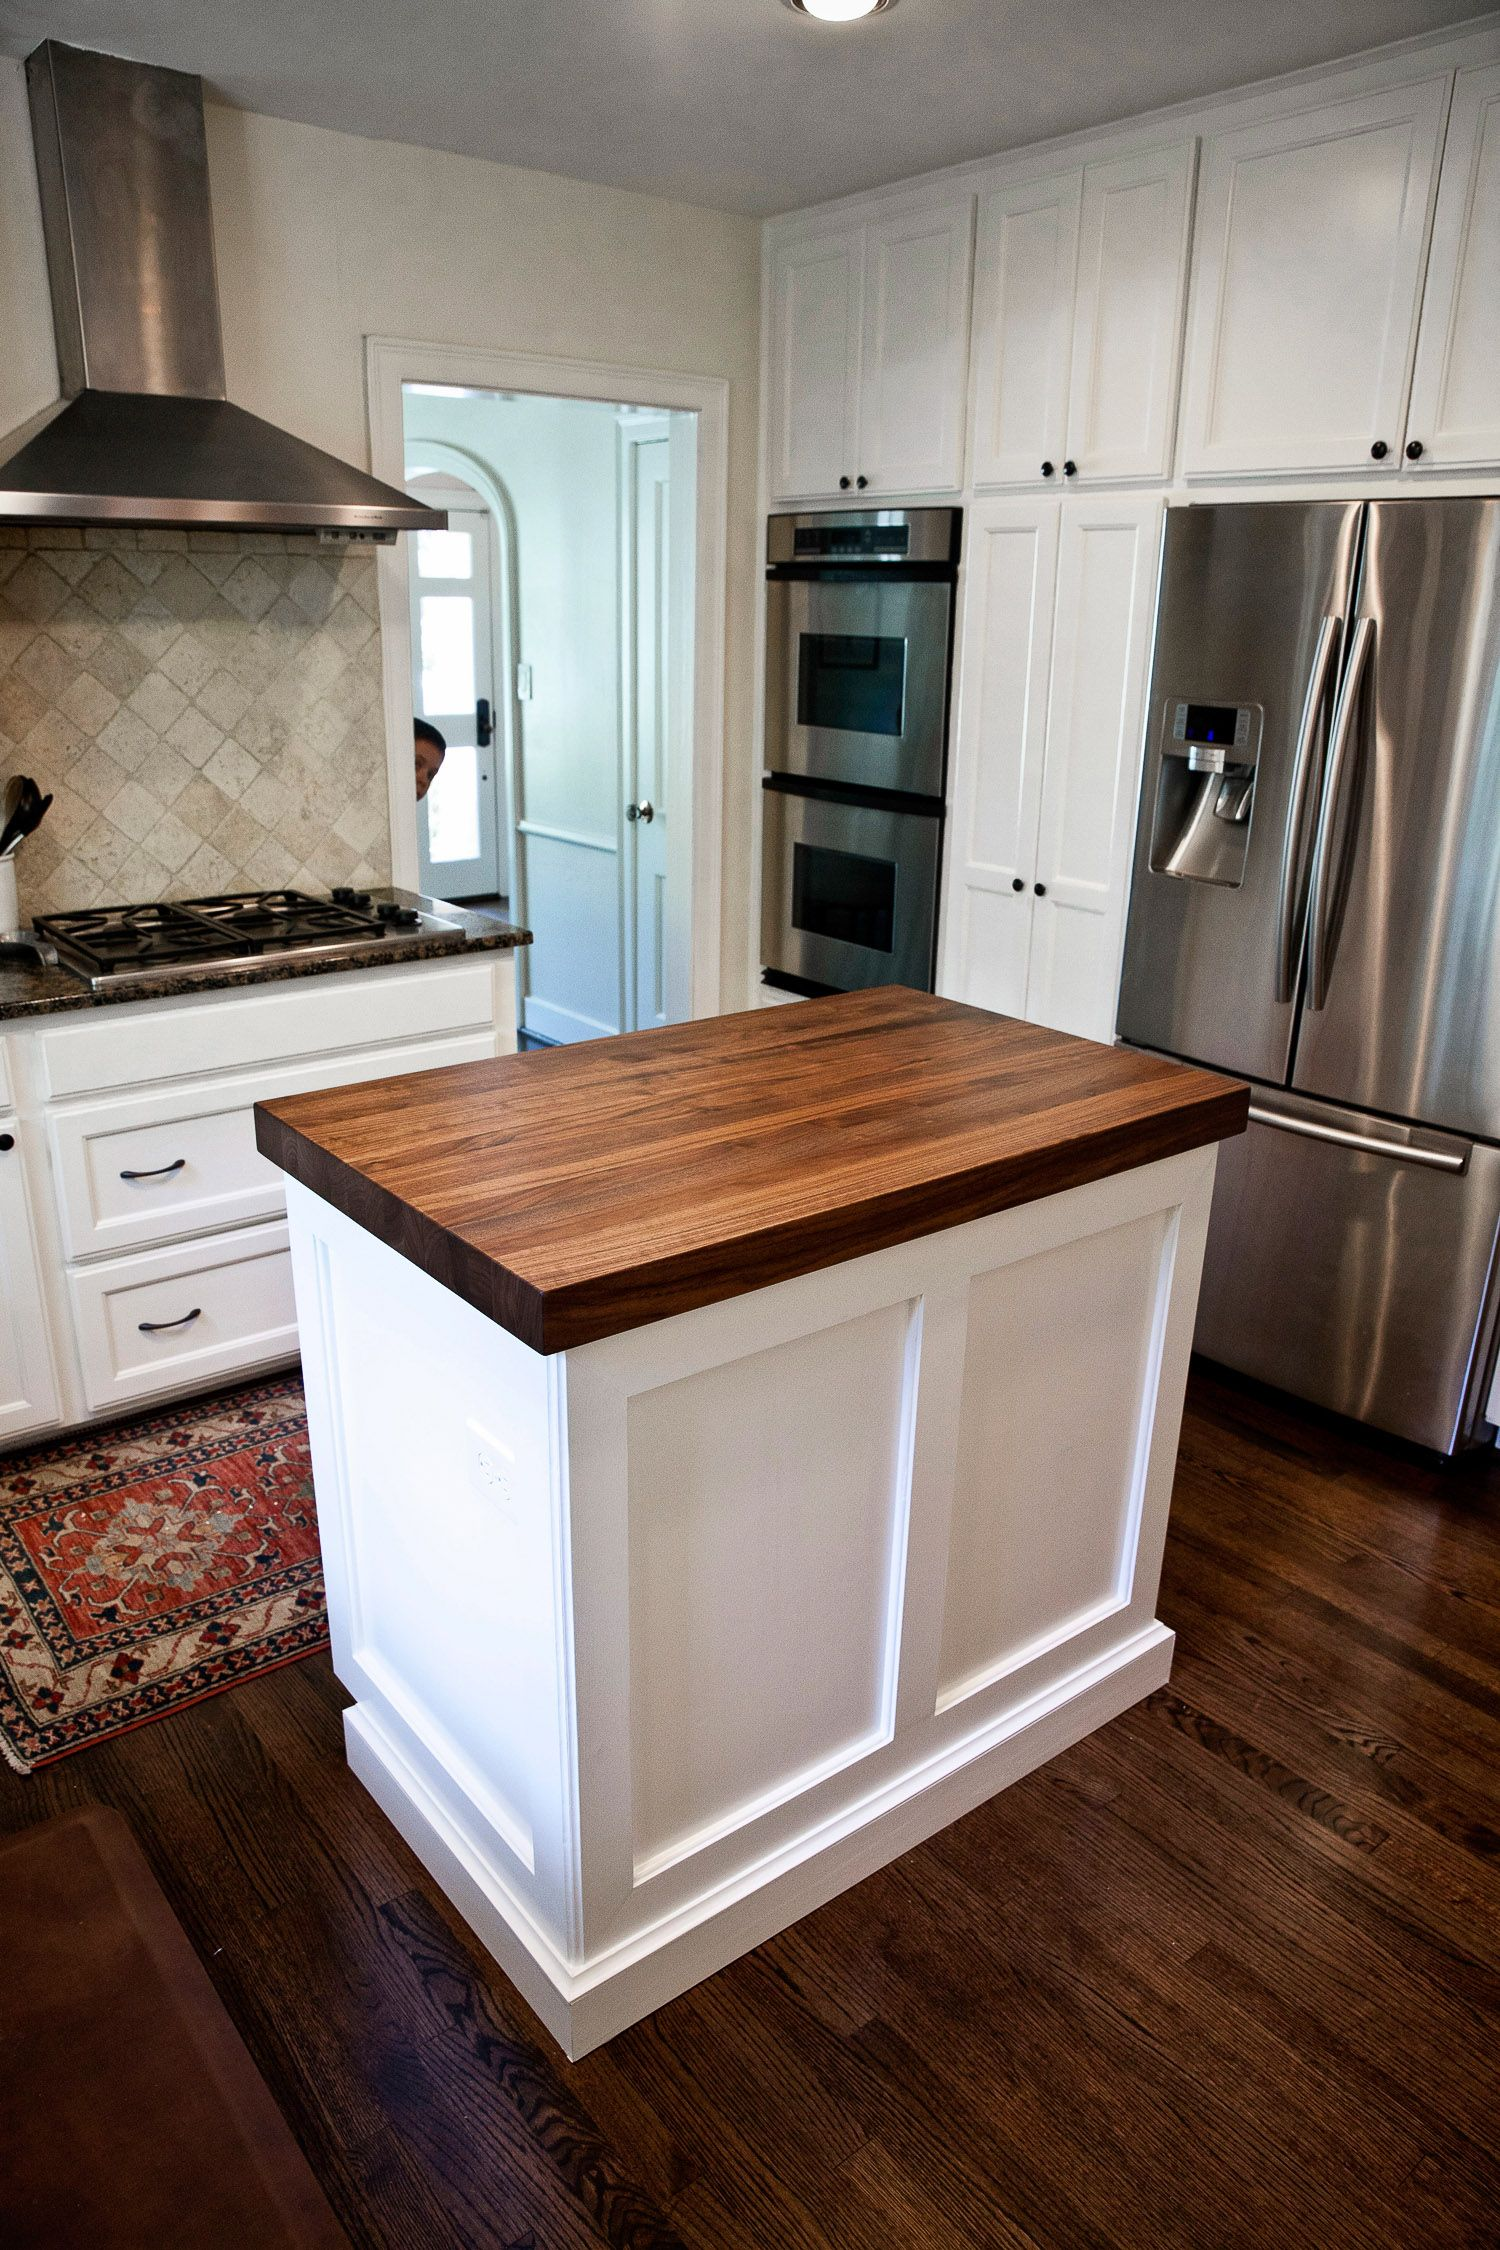 Granite Top Kitchen Cart Lysol Cleaner 19 Unique Island Ideas For Every Space And Budget ...